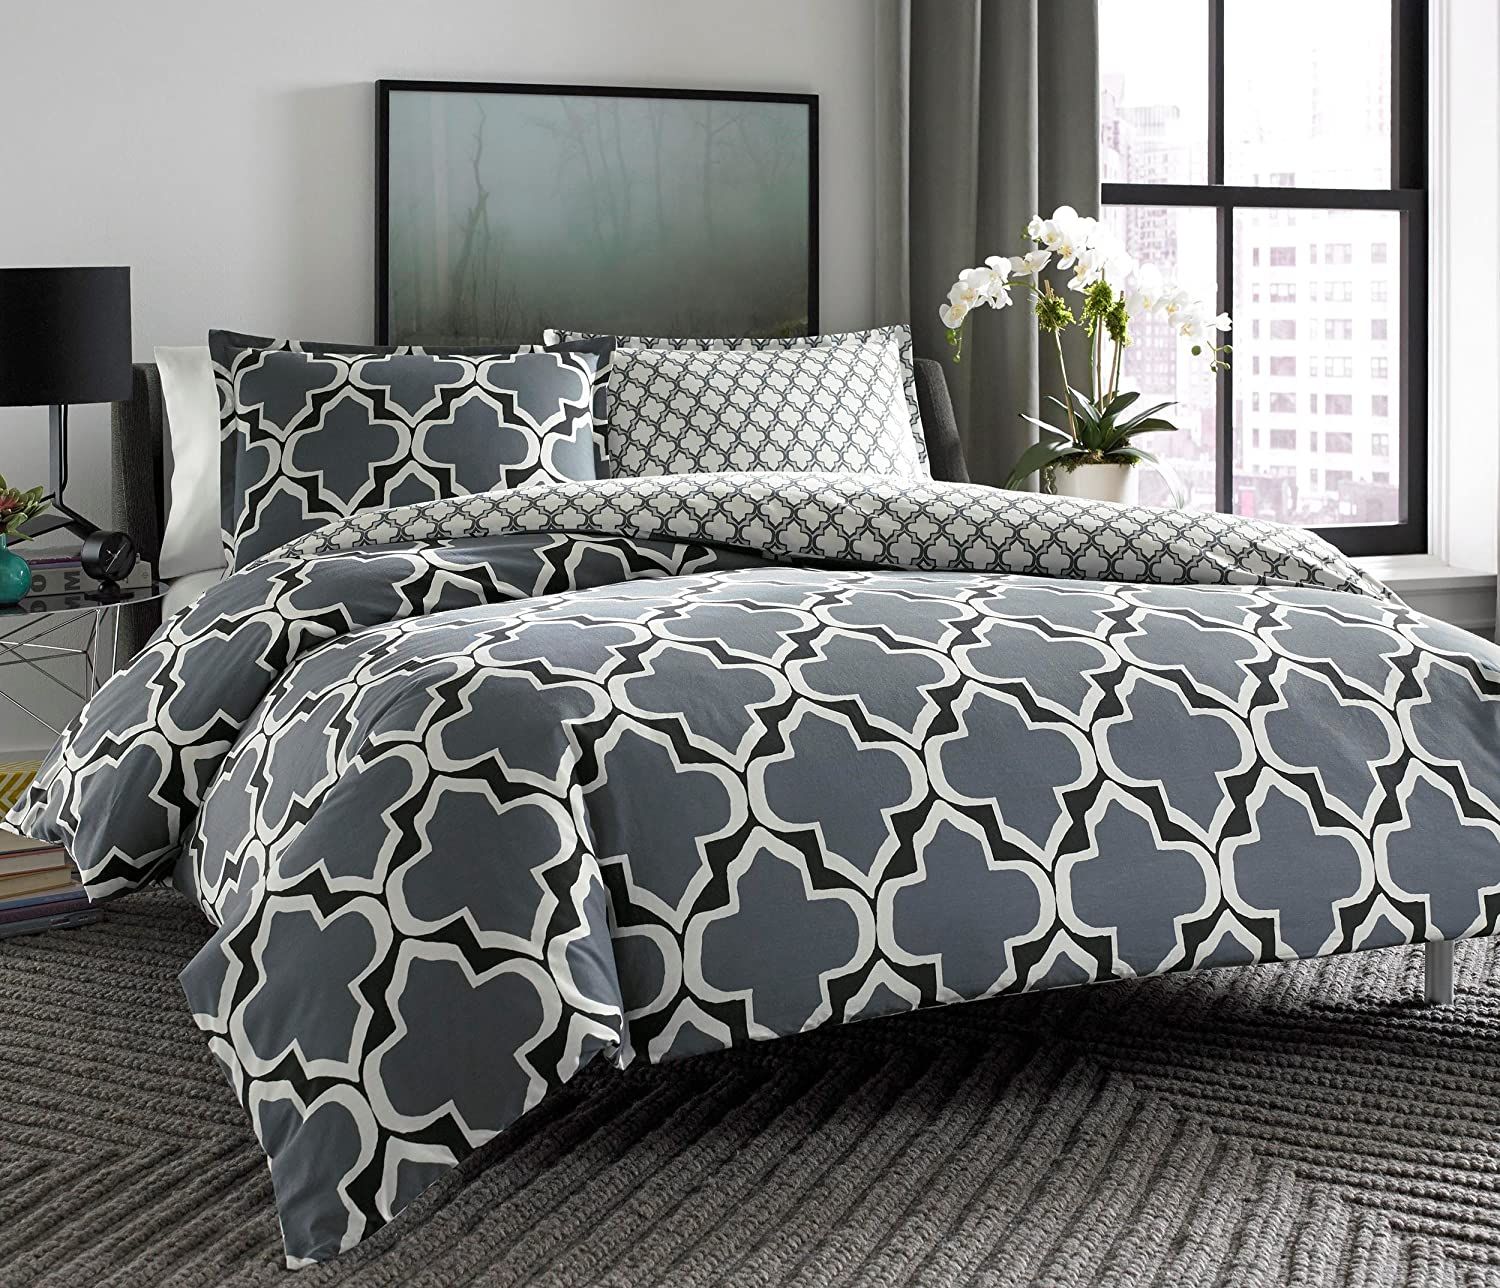 city scene bedding sets  ease bedding with style - city scene brodie reversible comforter set king